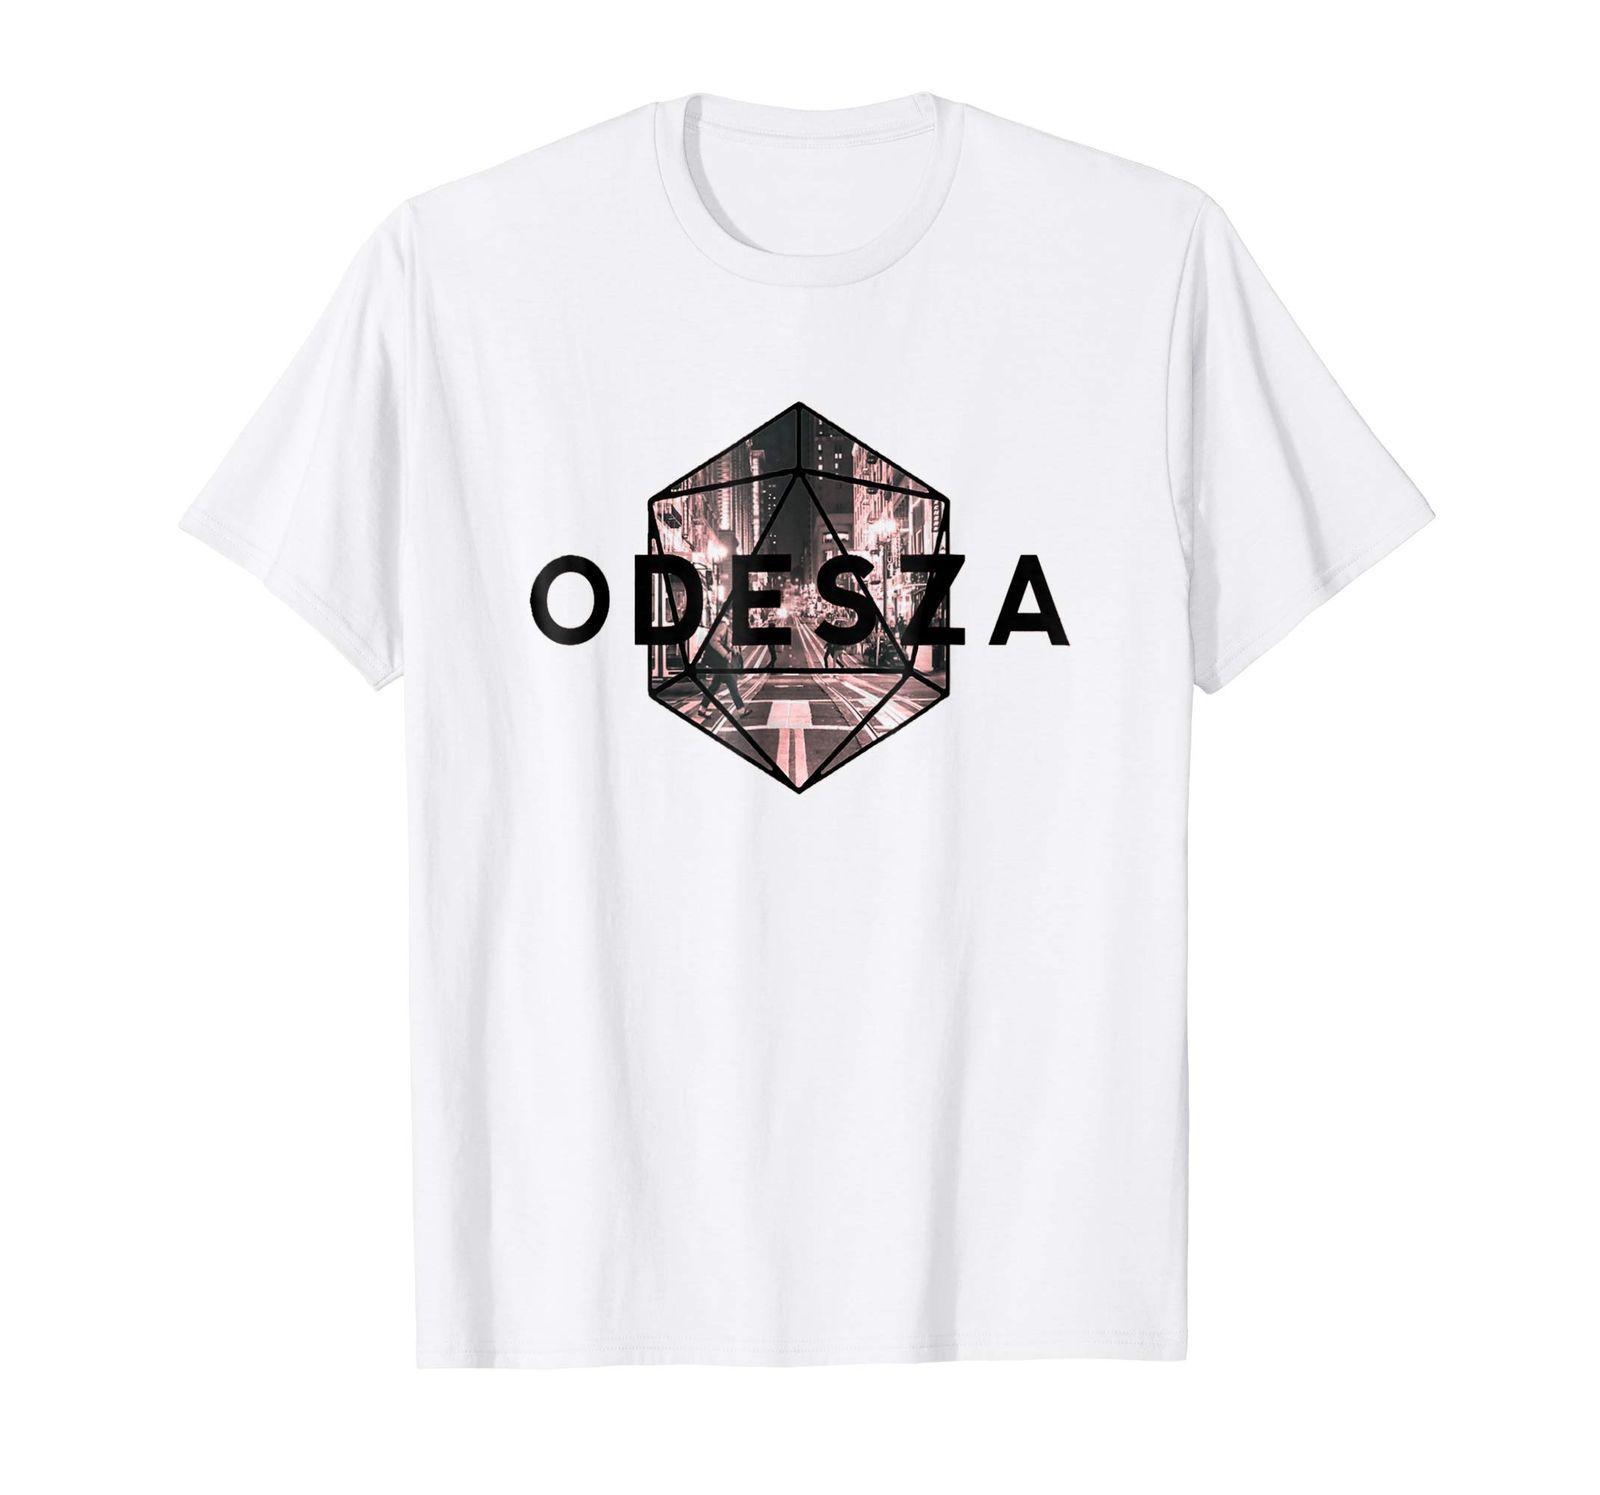 ODESZA American electronic music band White T-shirt 2018 Male Short Sleeve  Top Tee Free Shipping Summer Fashion t shirt